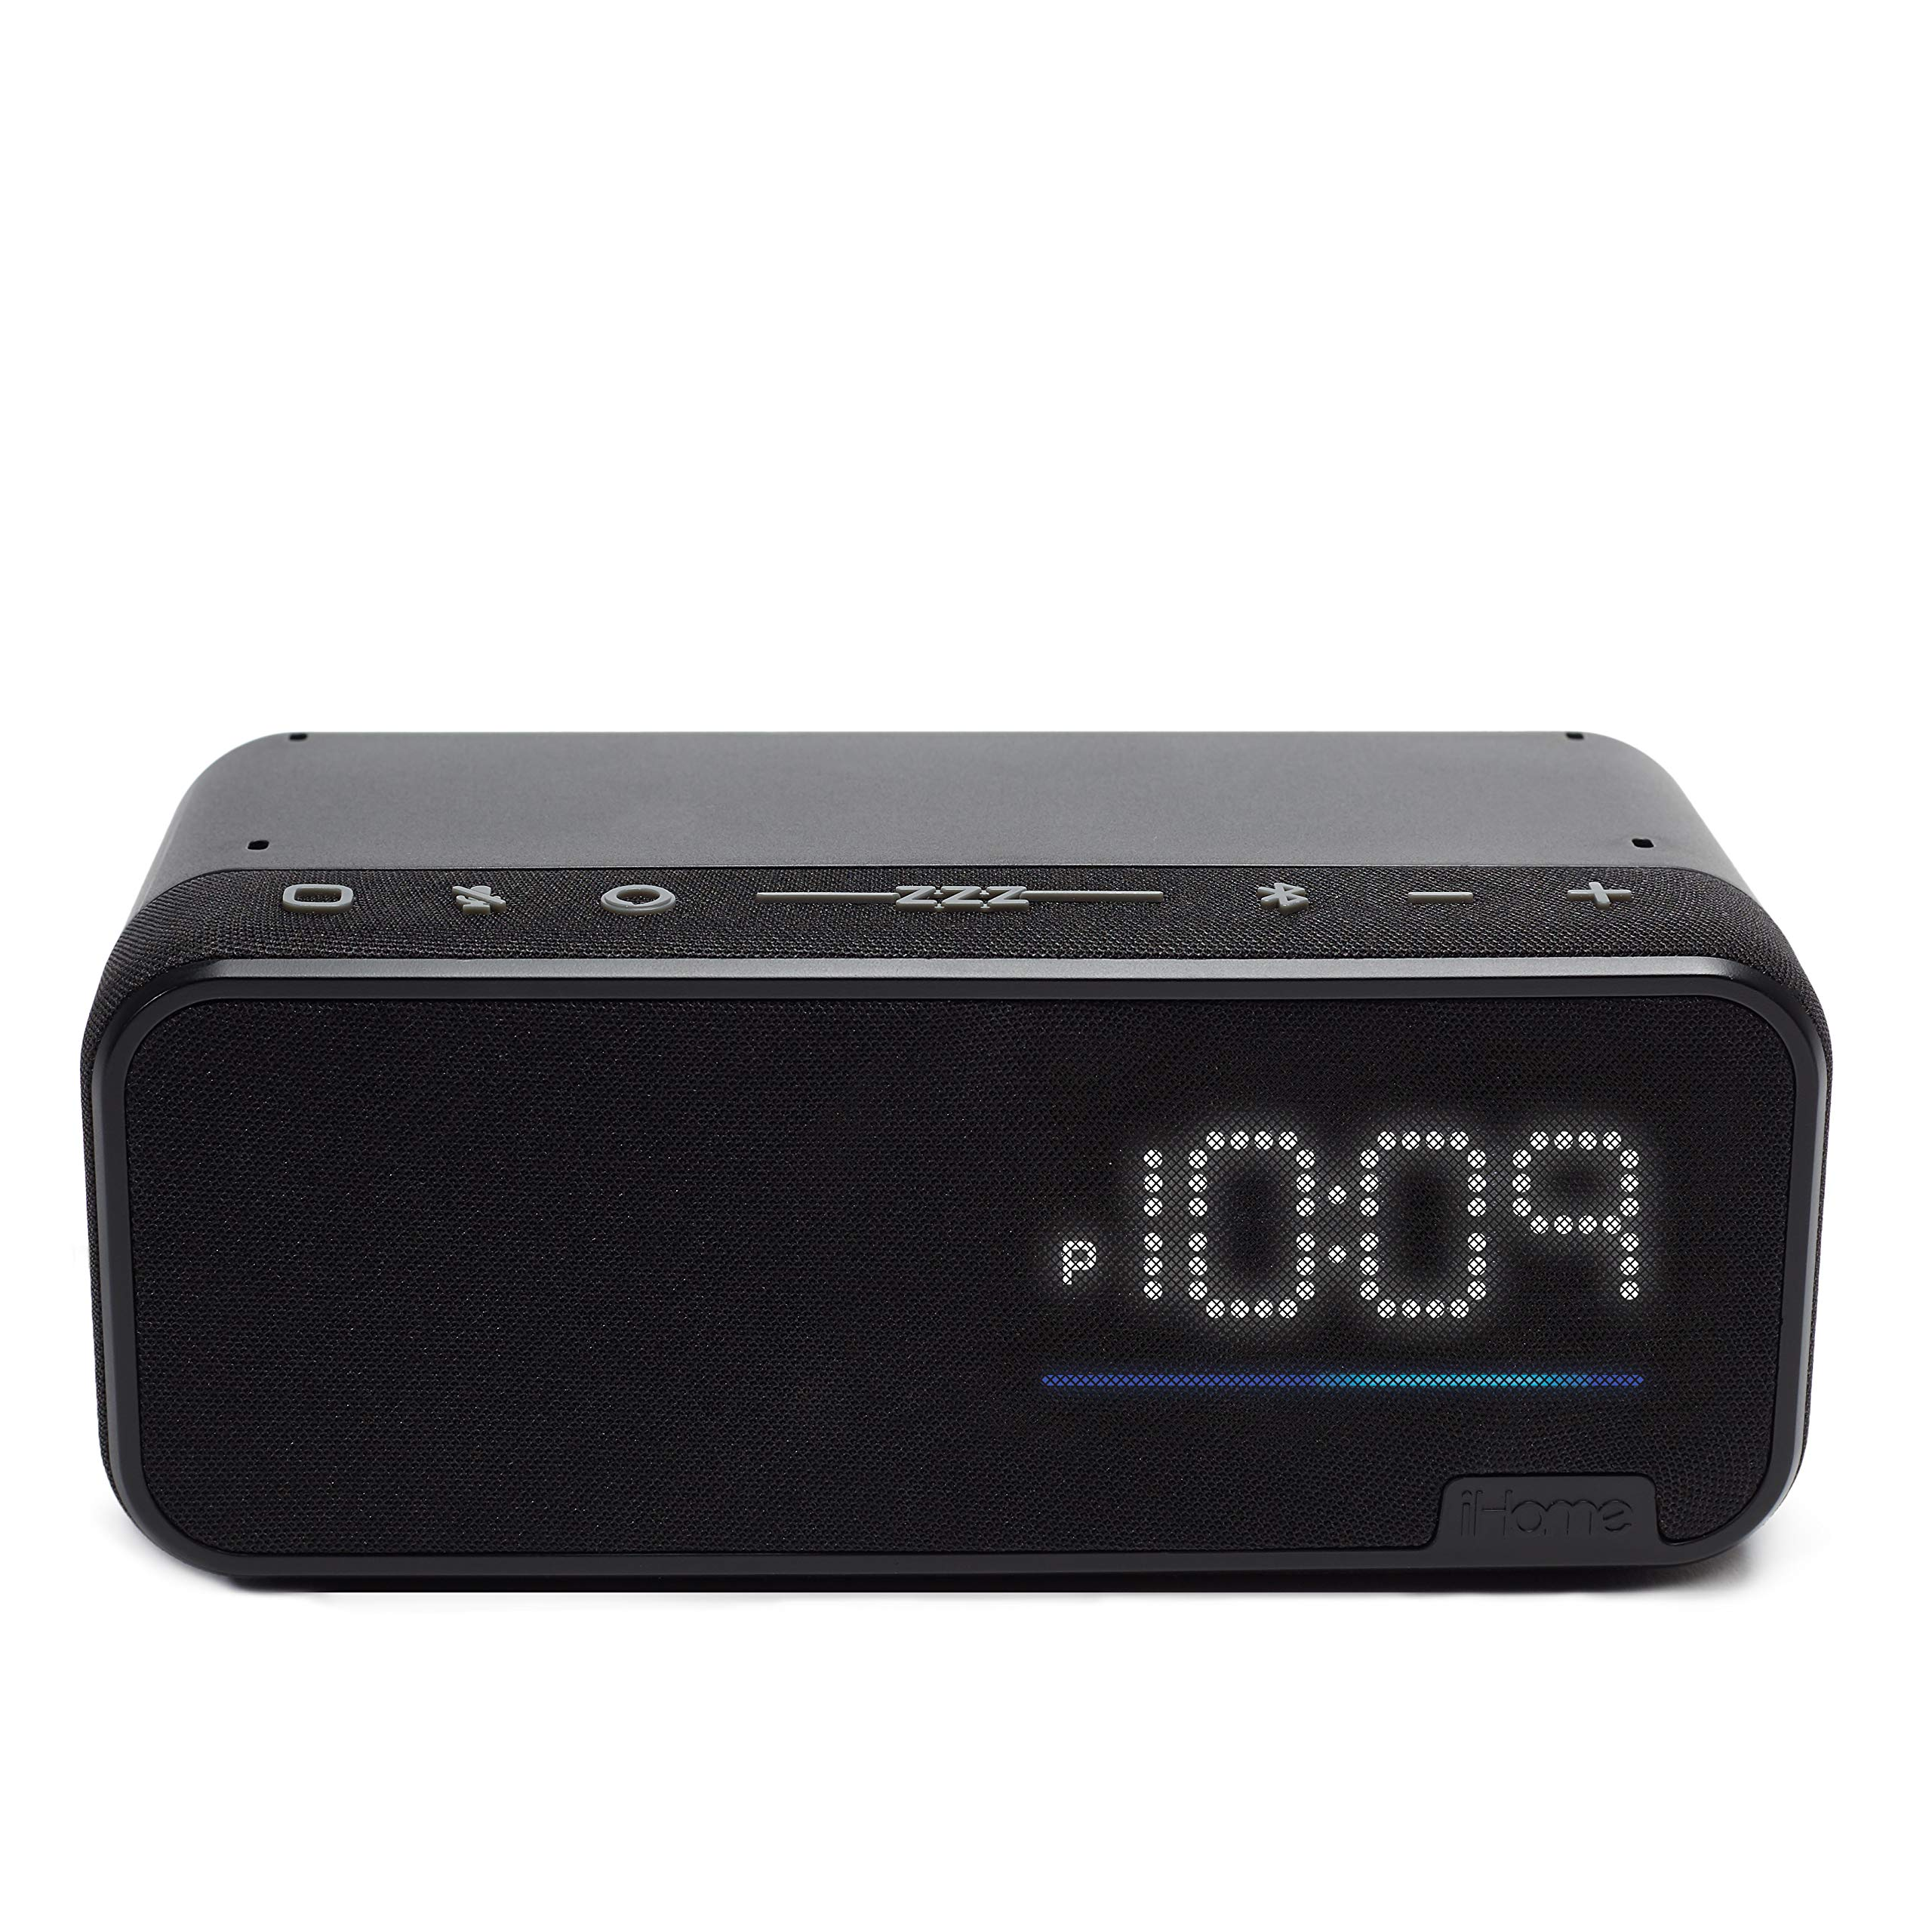 iHome Bluetooth Speaker Home Office Bedside Clock Speaker System Built in Alexa WiFi Enabled USB Charging Port Far Field Voice Activation Smart Home Control (IAV14)